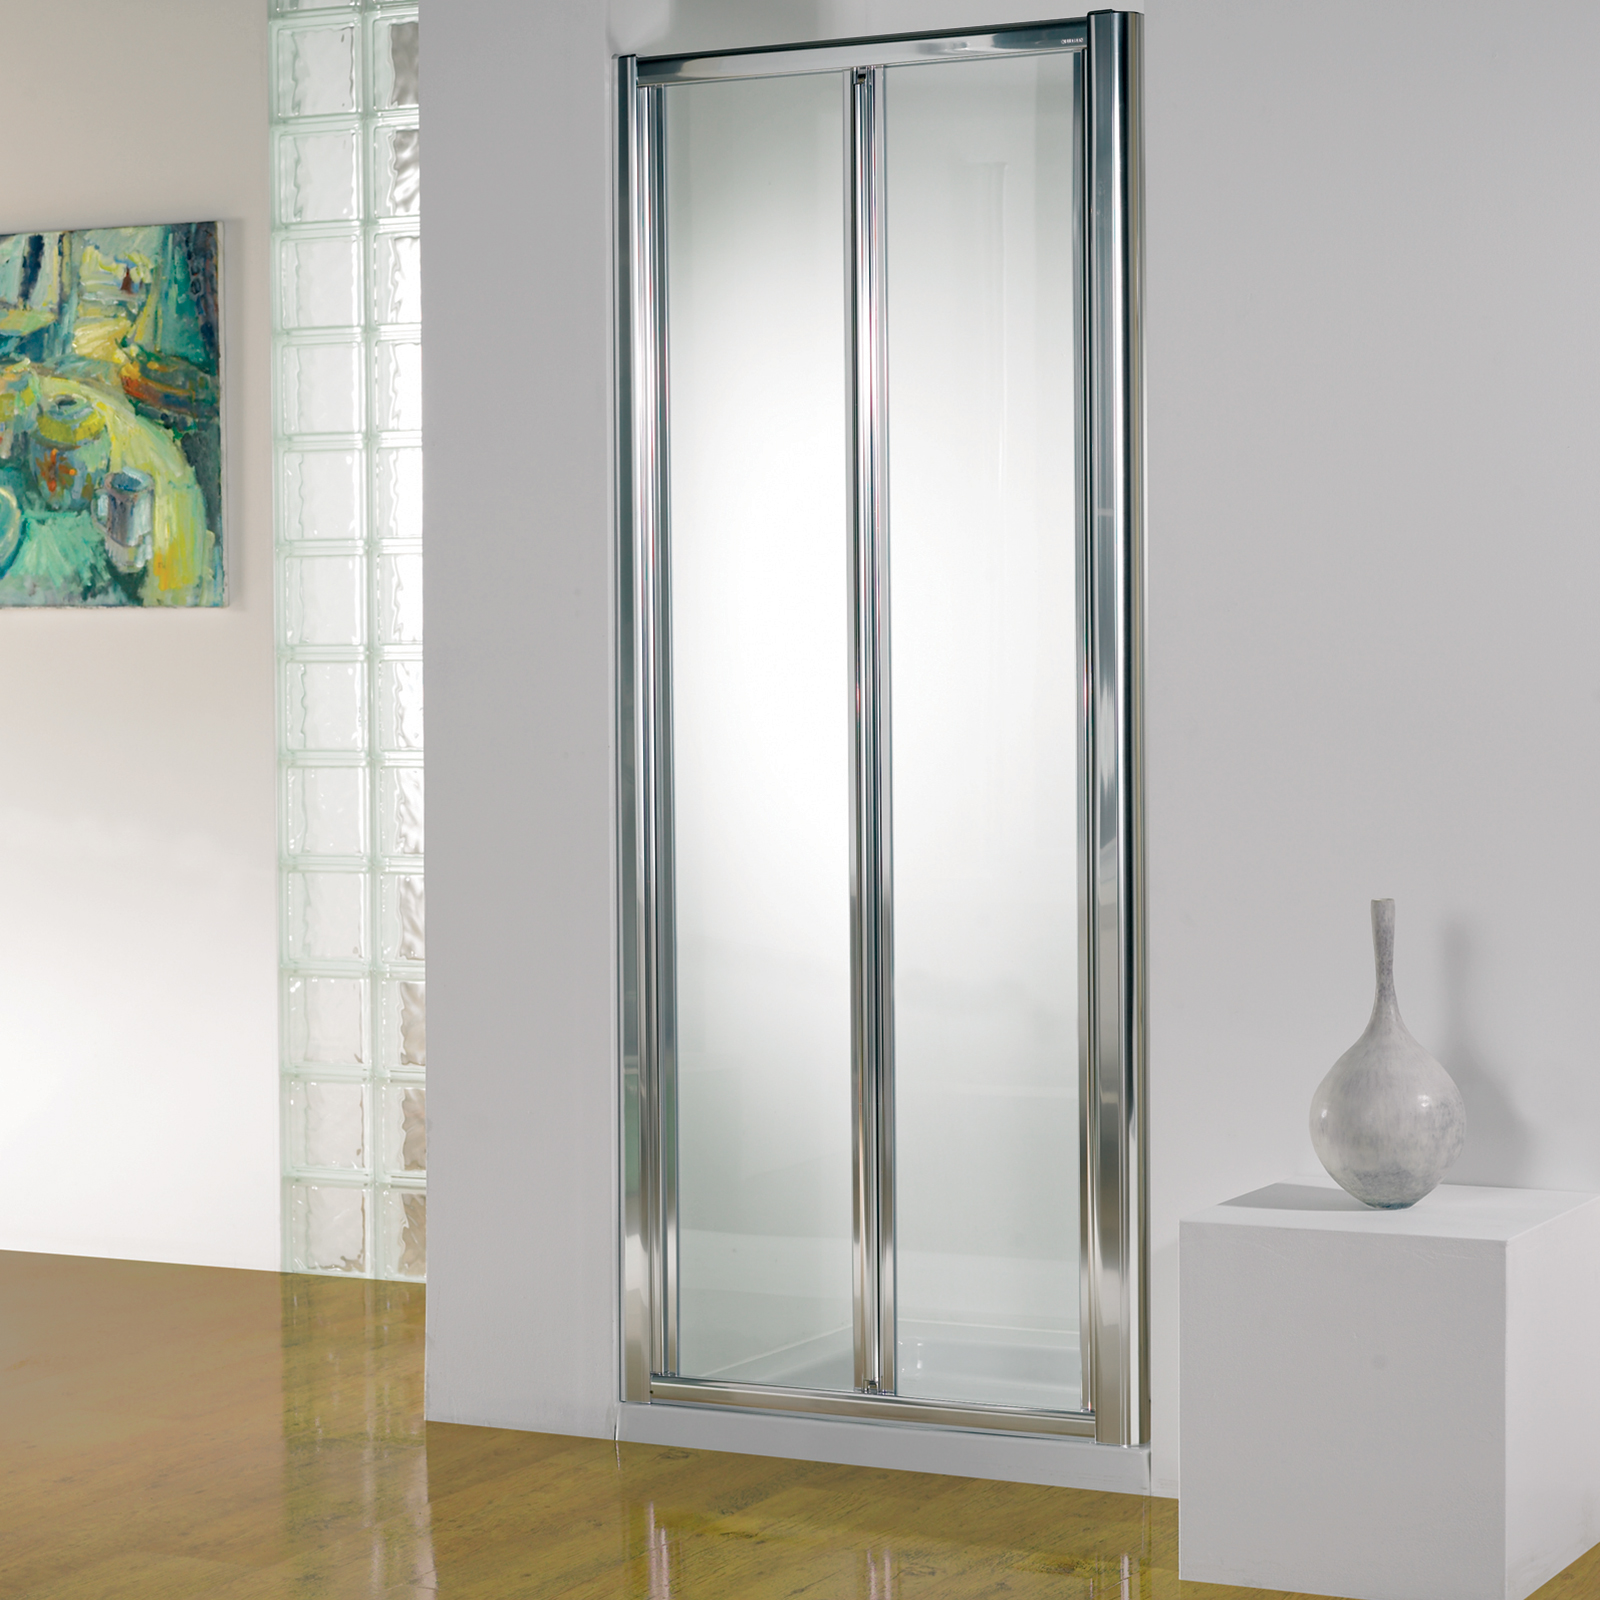 Kudos Original 900mm Bifold Shower Door